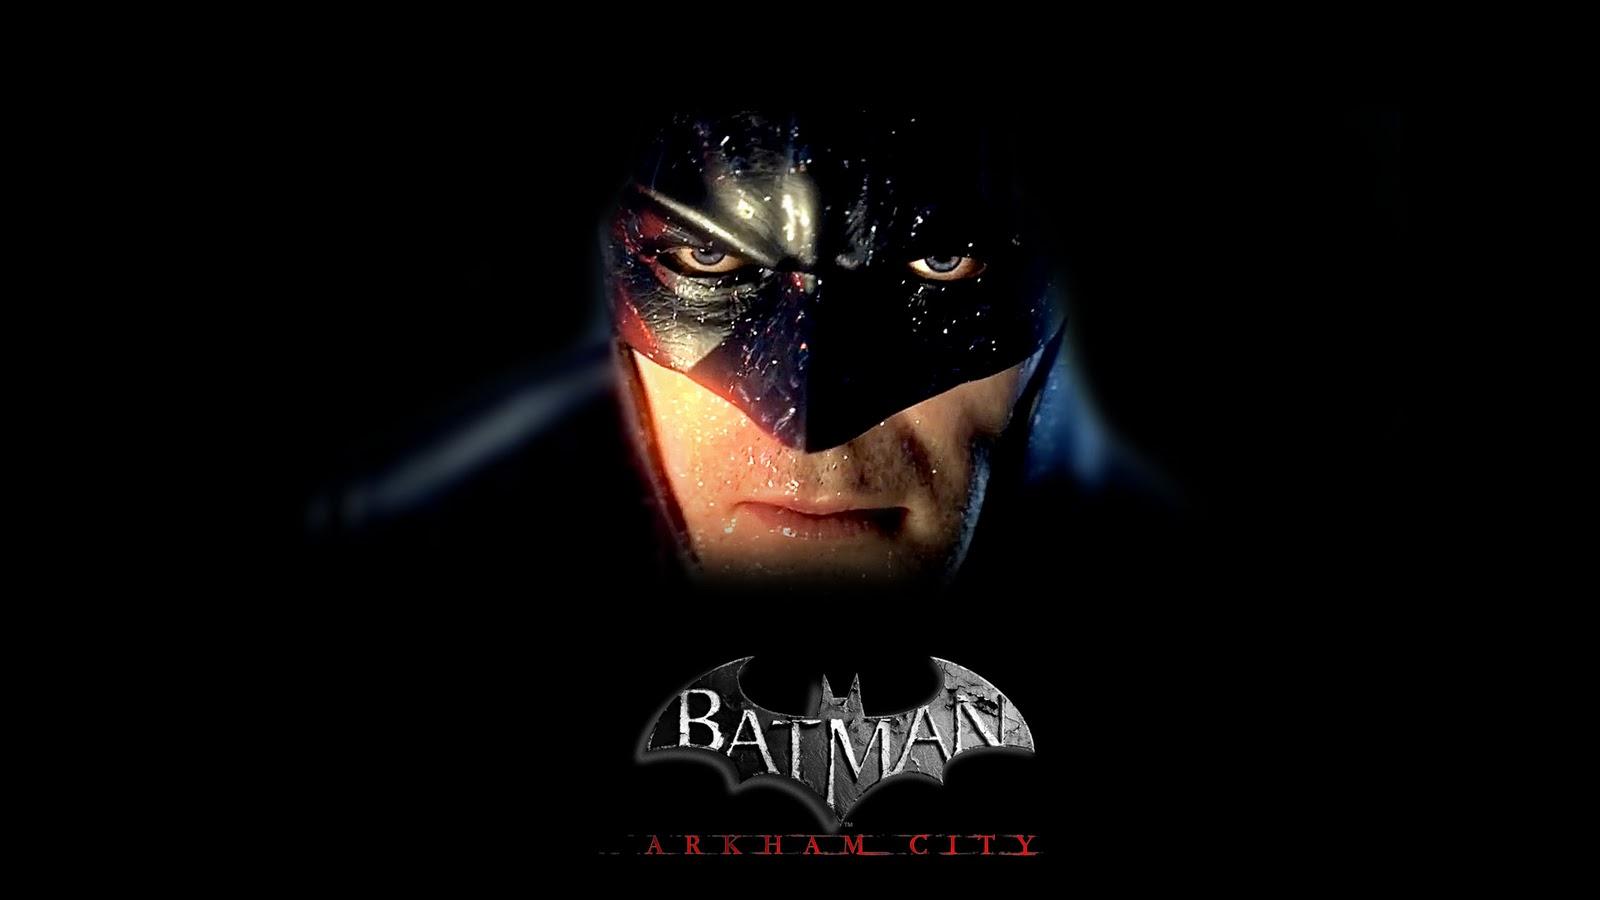 Download image Batman Arkham City Wallpaper Hd 2 Jpg PC Android 1600x900